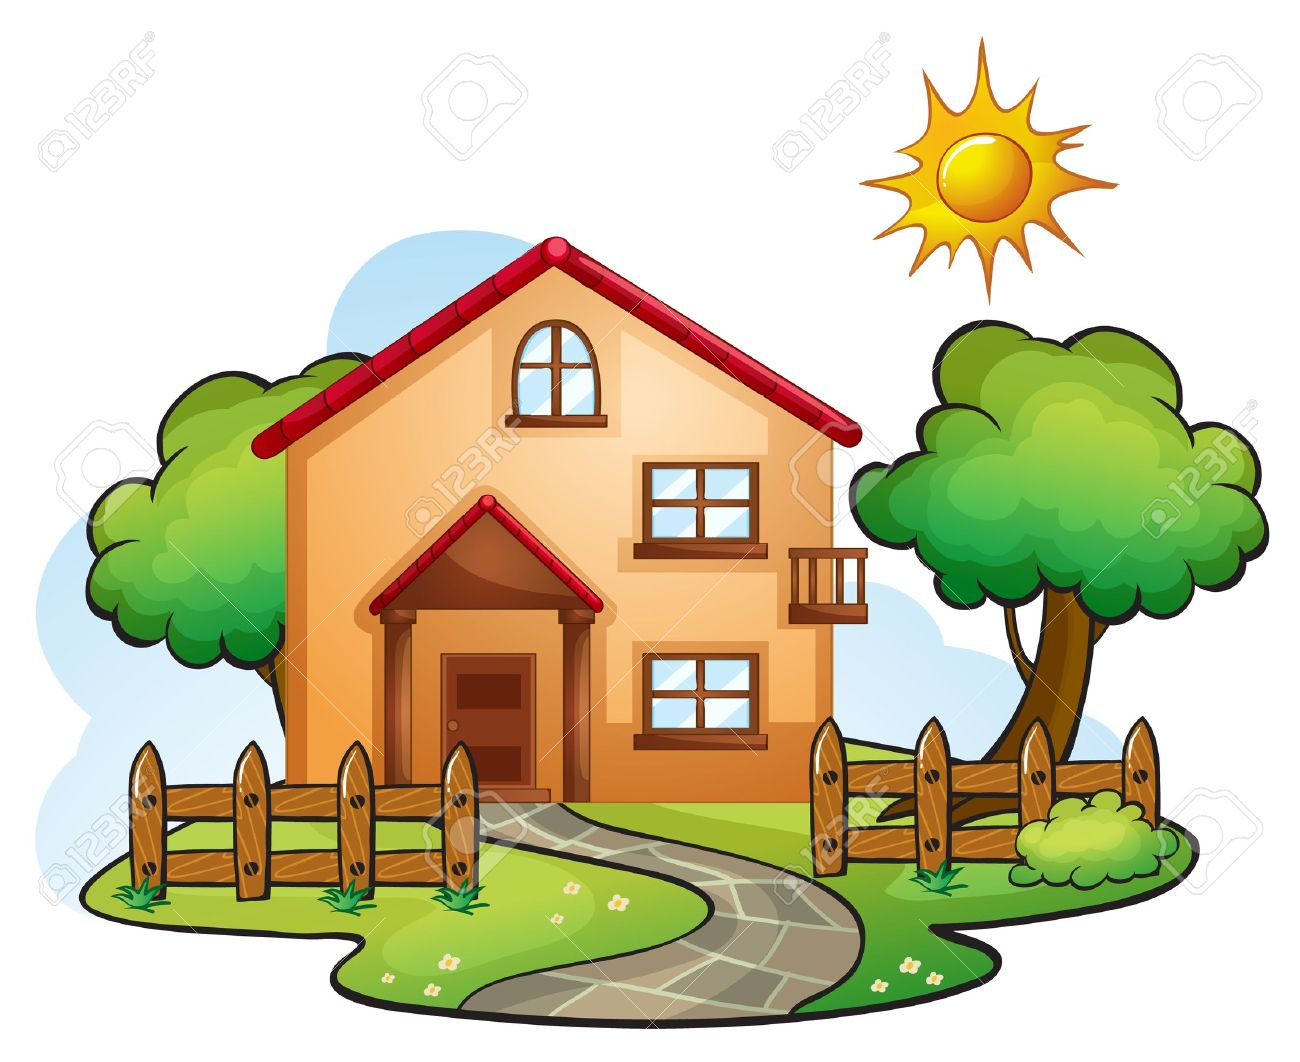 Living Room Images Of A House house drawing stock photos images 95091 royalty free illustration of a in beautiful nature illustration